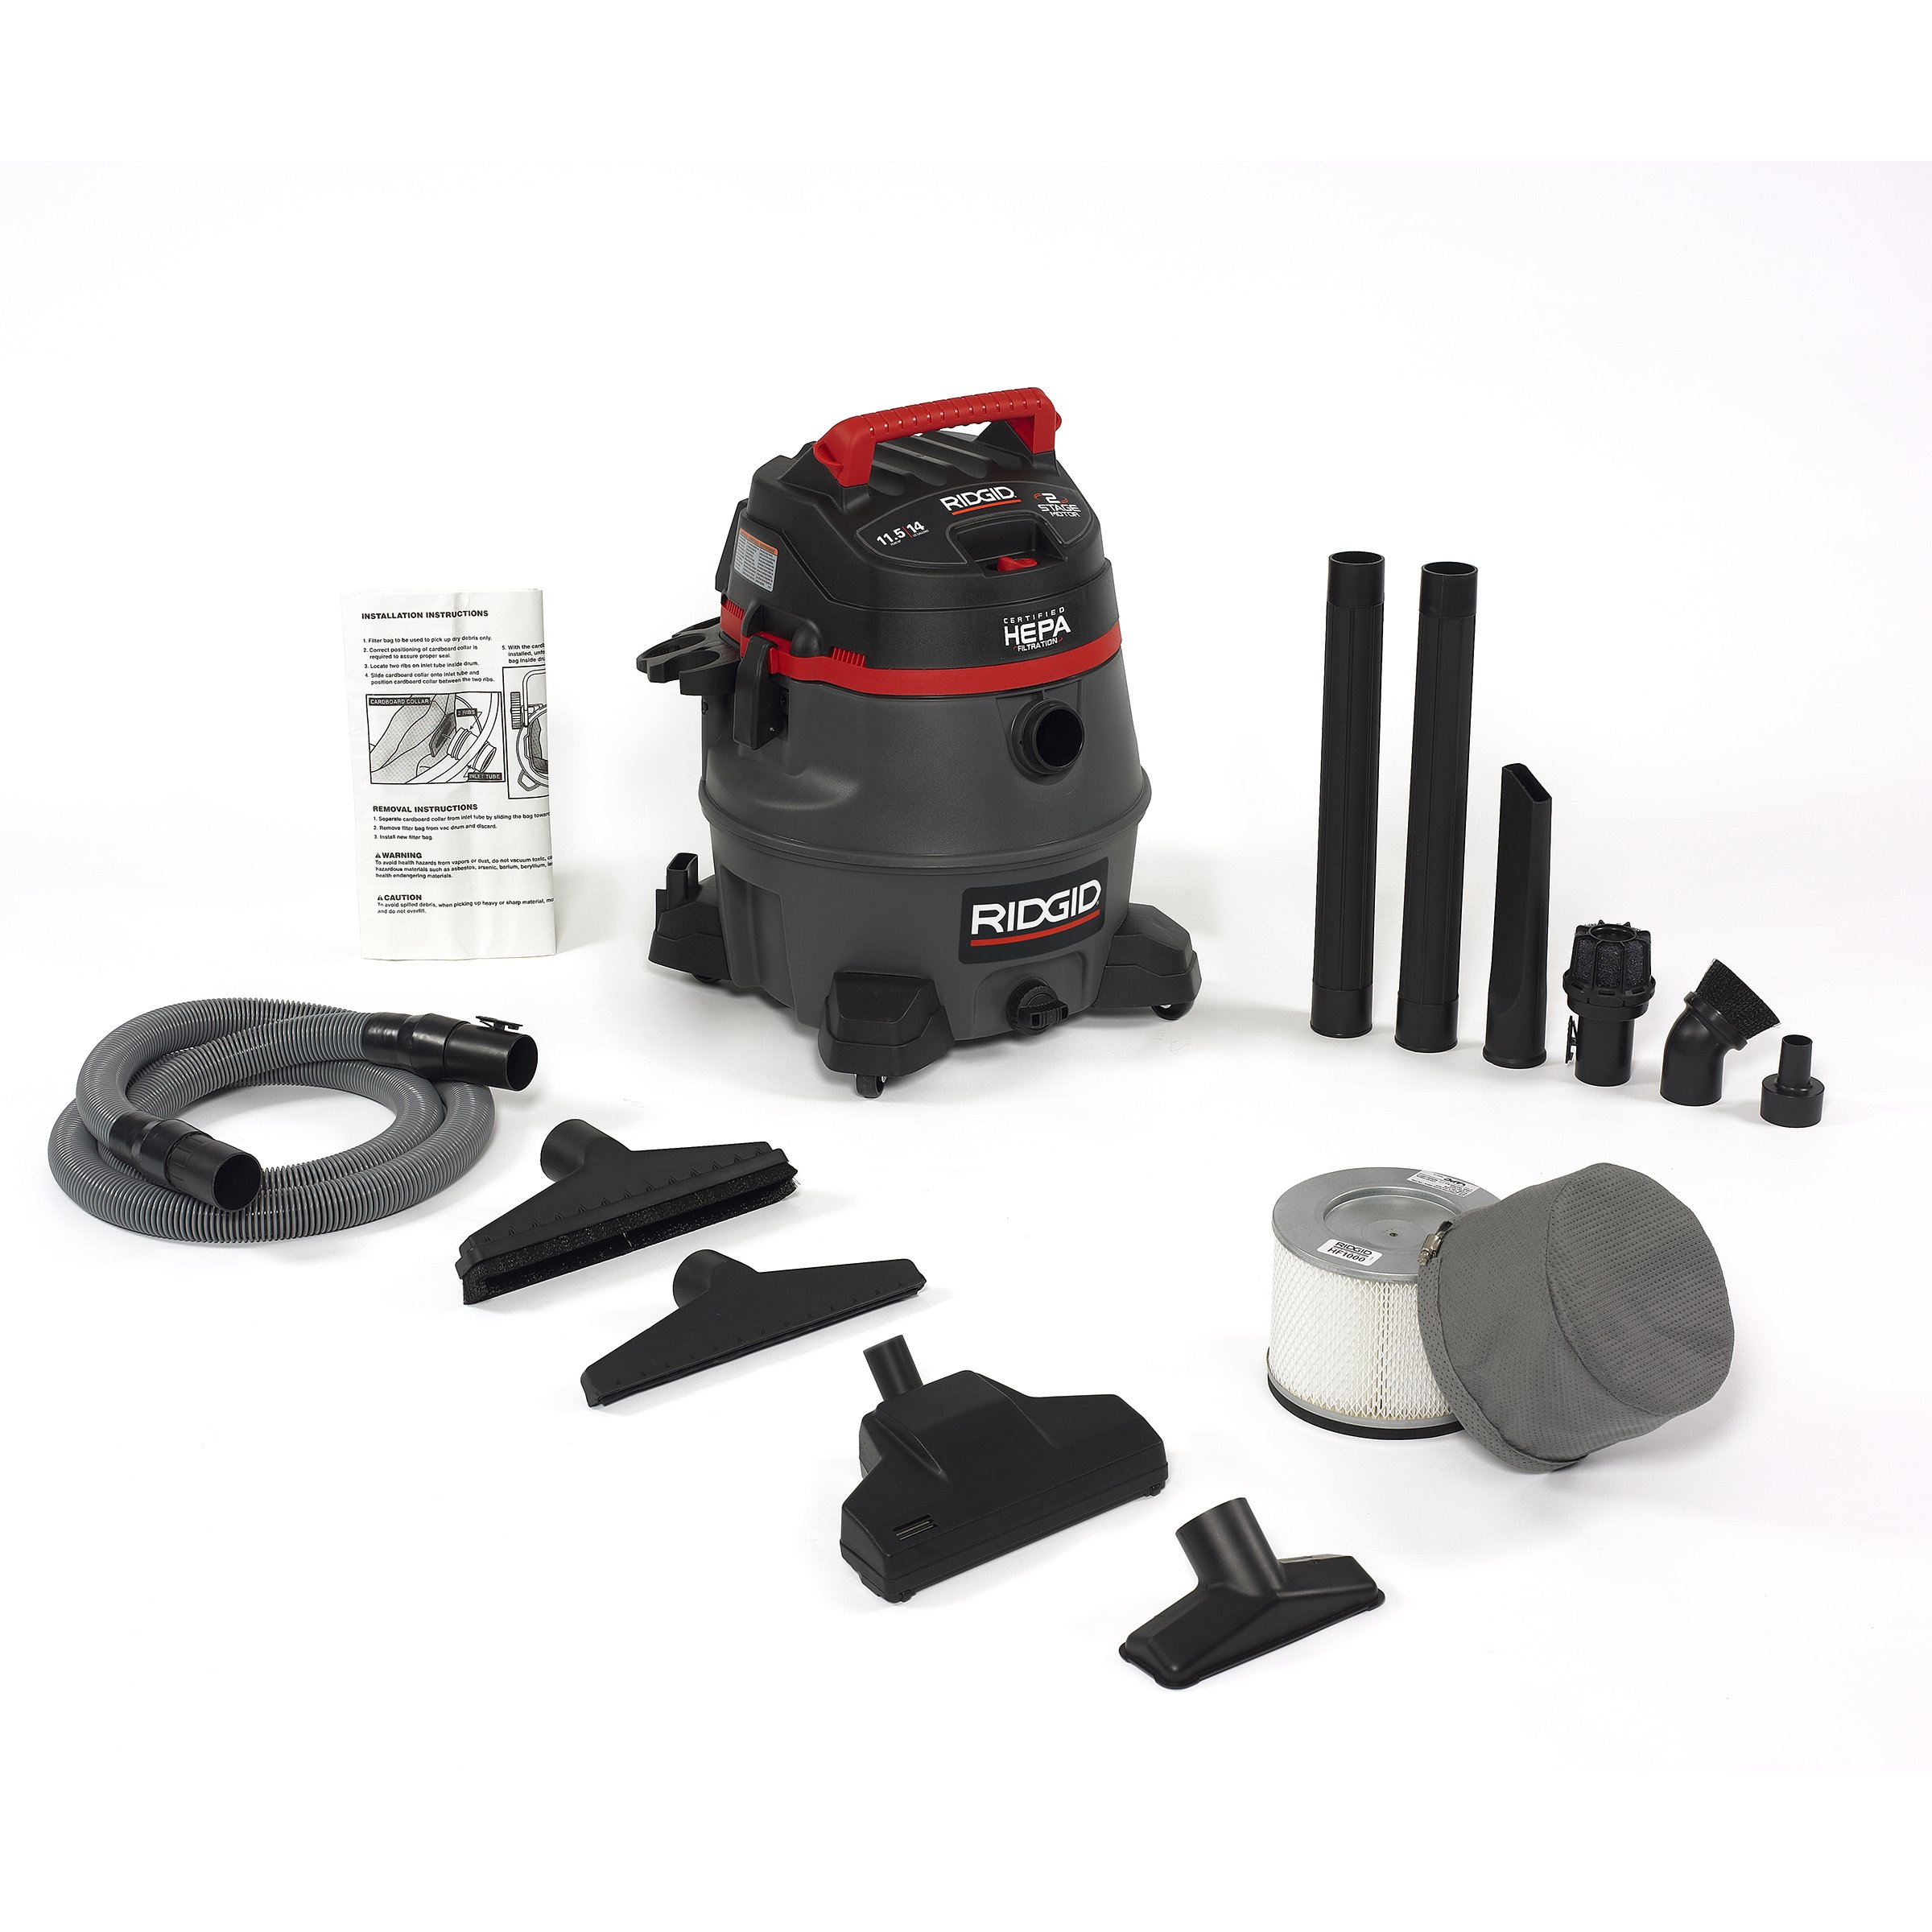 RIDGID 50368 RV2400HF Wet Dry Vacuum, 14-Gallon Shop Vacuum with Certified HEPA Filtration, 2-Stage 11.5A Motor, Casters, Pro Hose, Drain, Blower Port by Ridgid